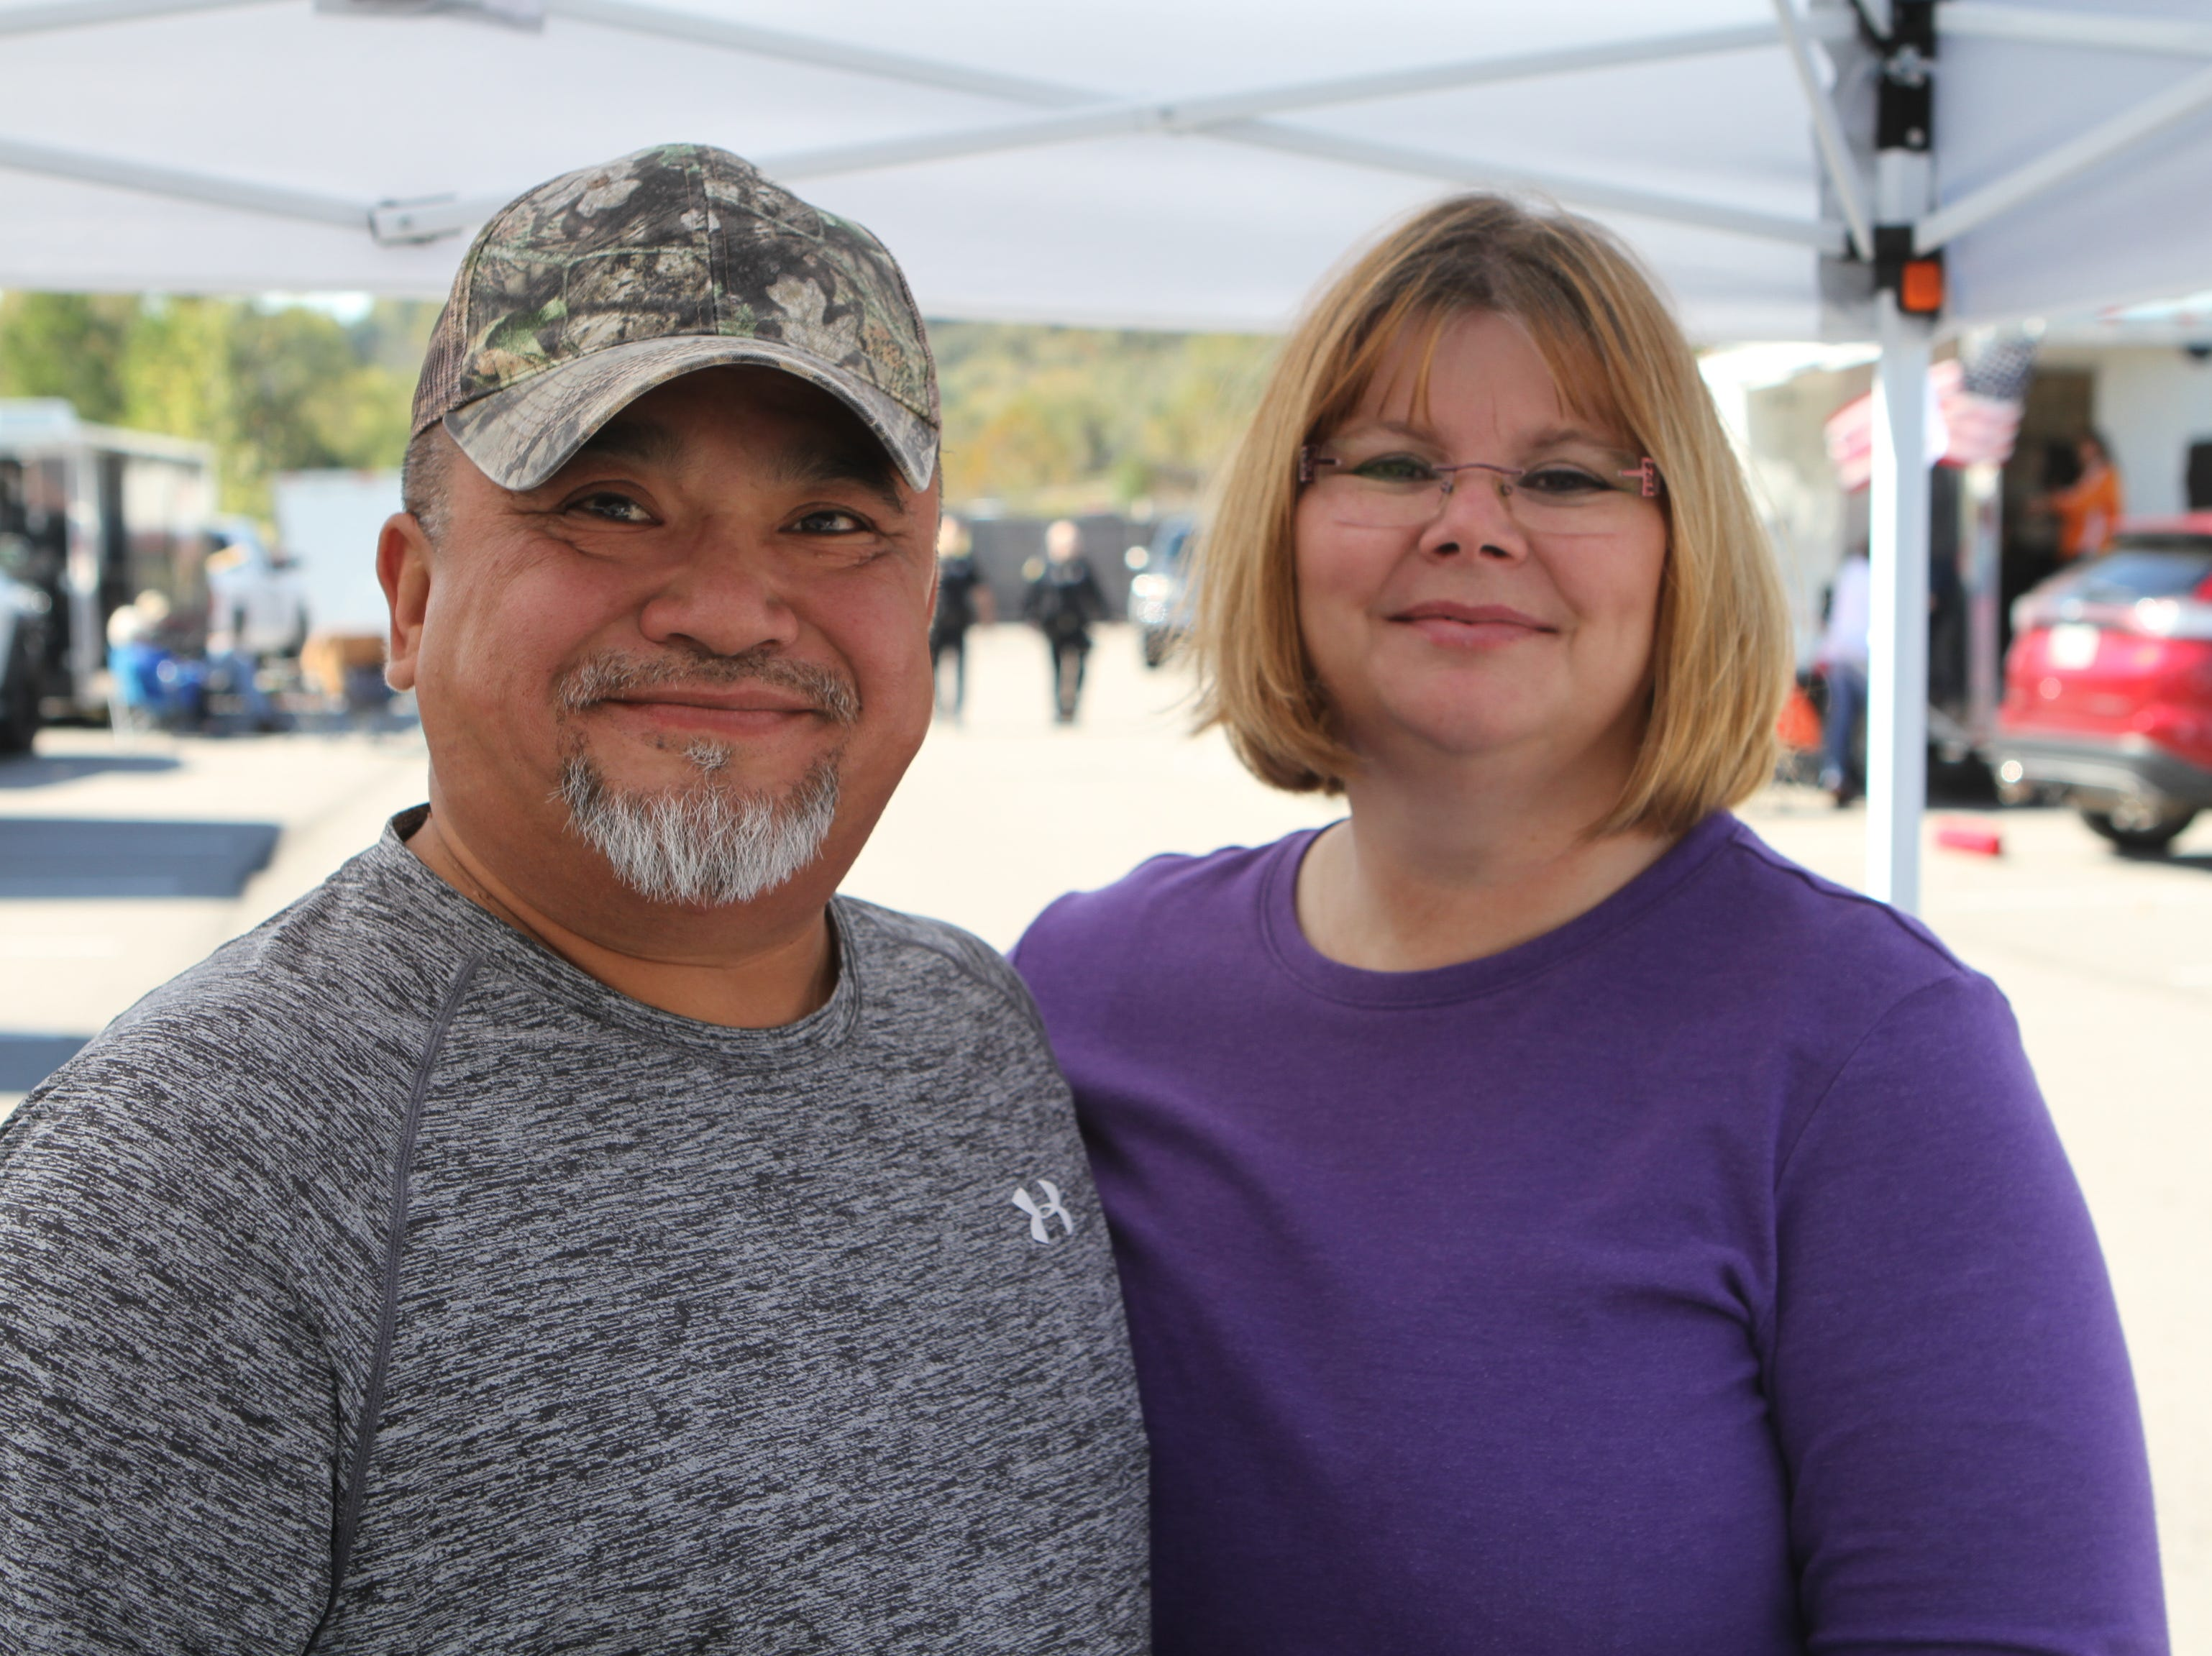 Henry and Tina Spade at the annual BBQ Bash at Liberty Park on Saturday, October 20, 2018.